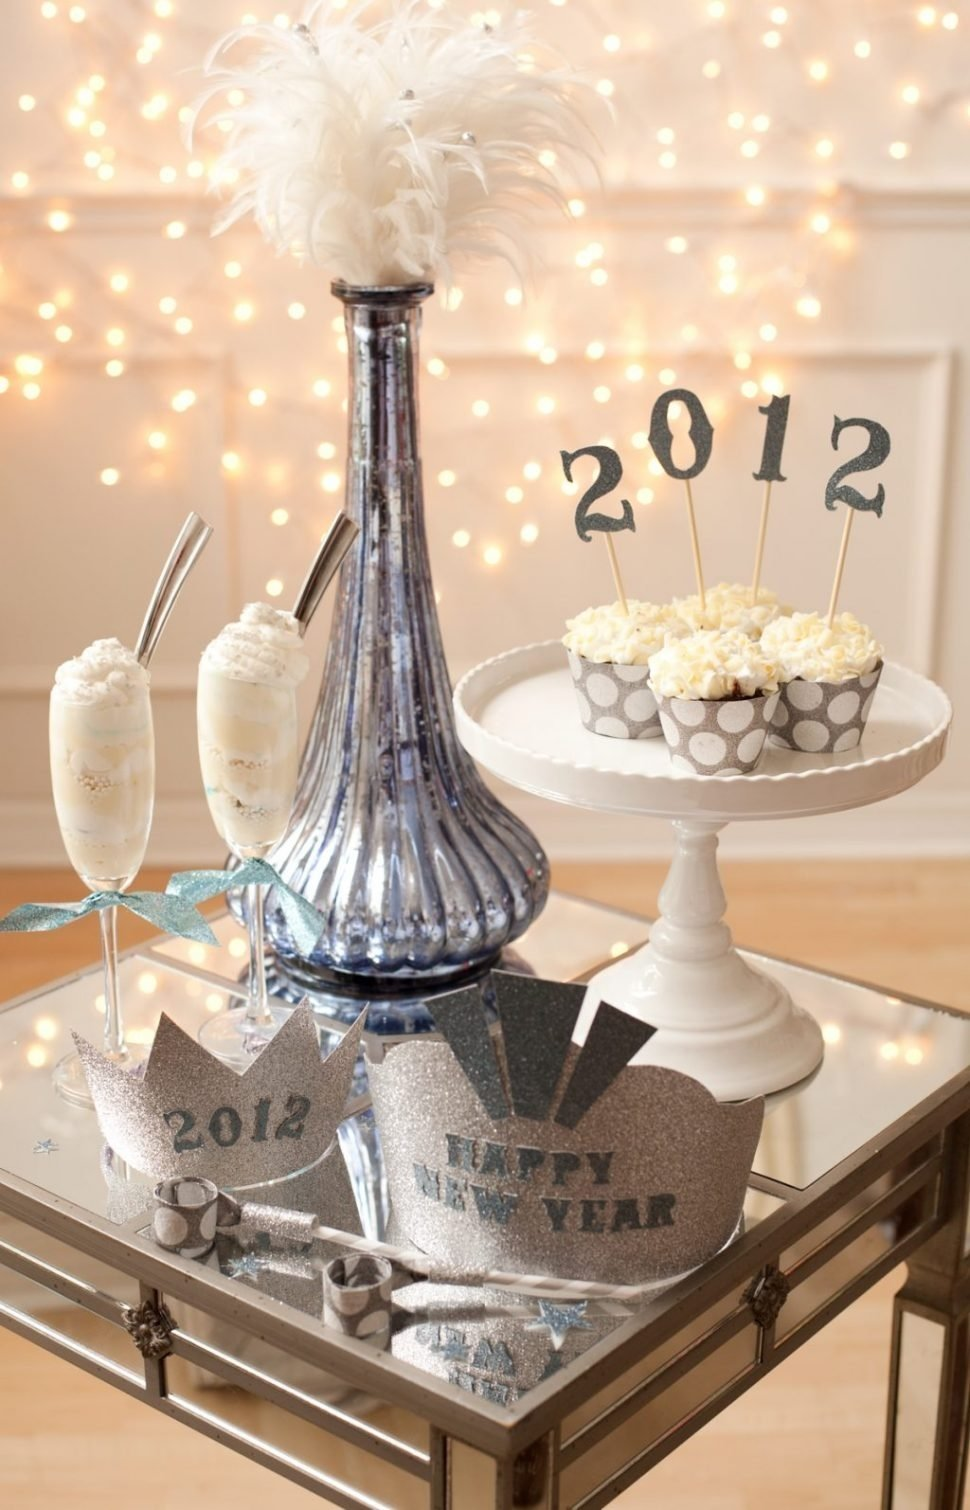 10 Unique Unique New Years Eve Ideas furniture new years eve table decorations dinner ideas images 2020